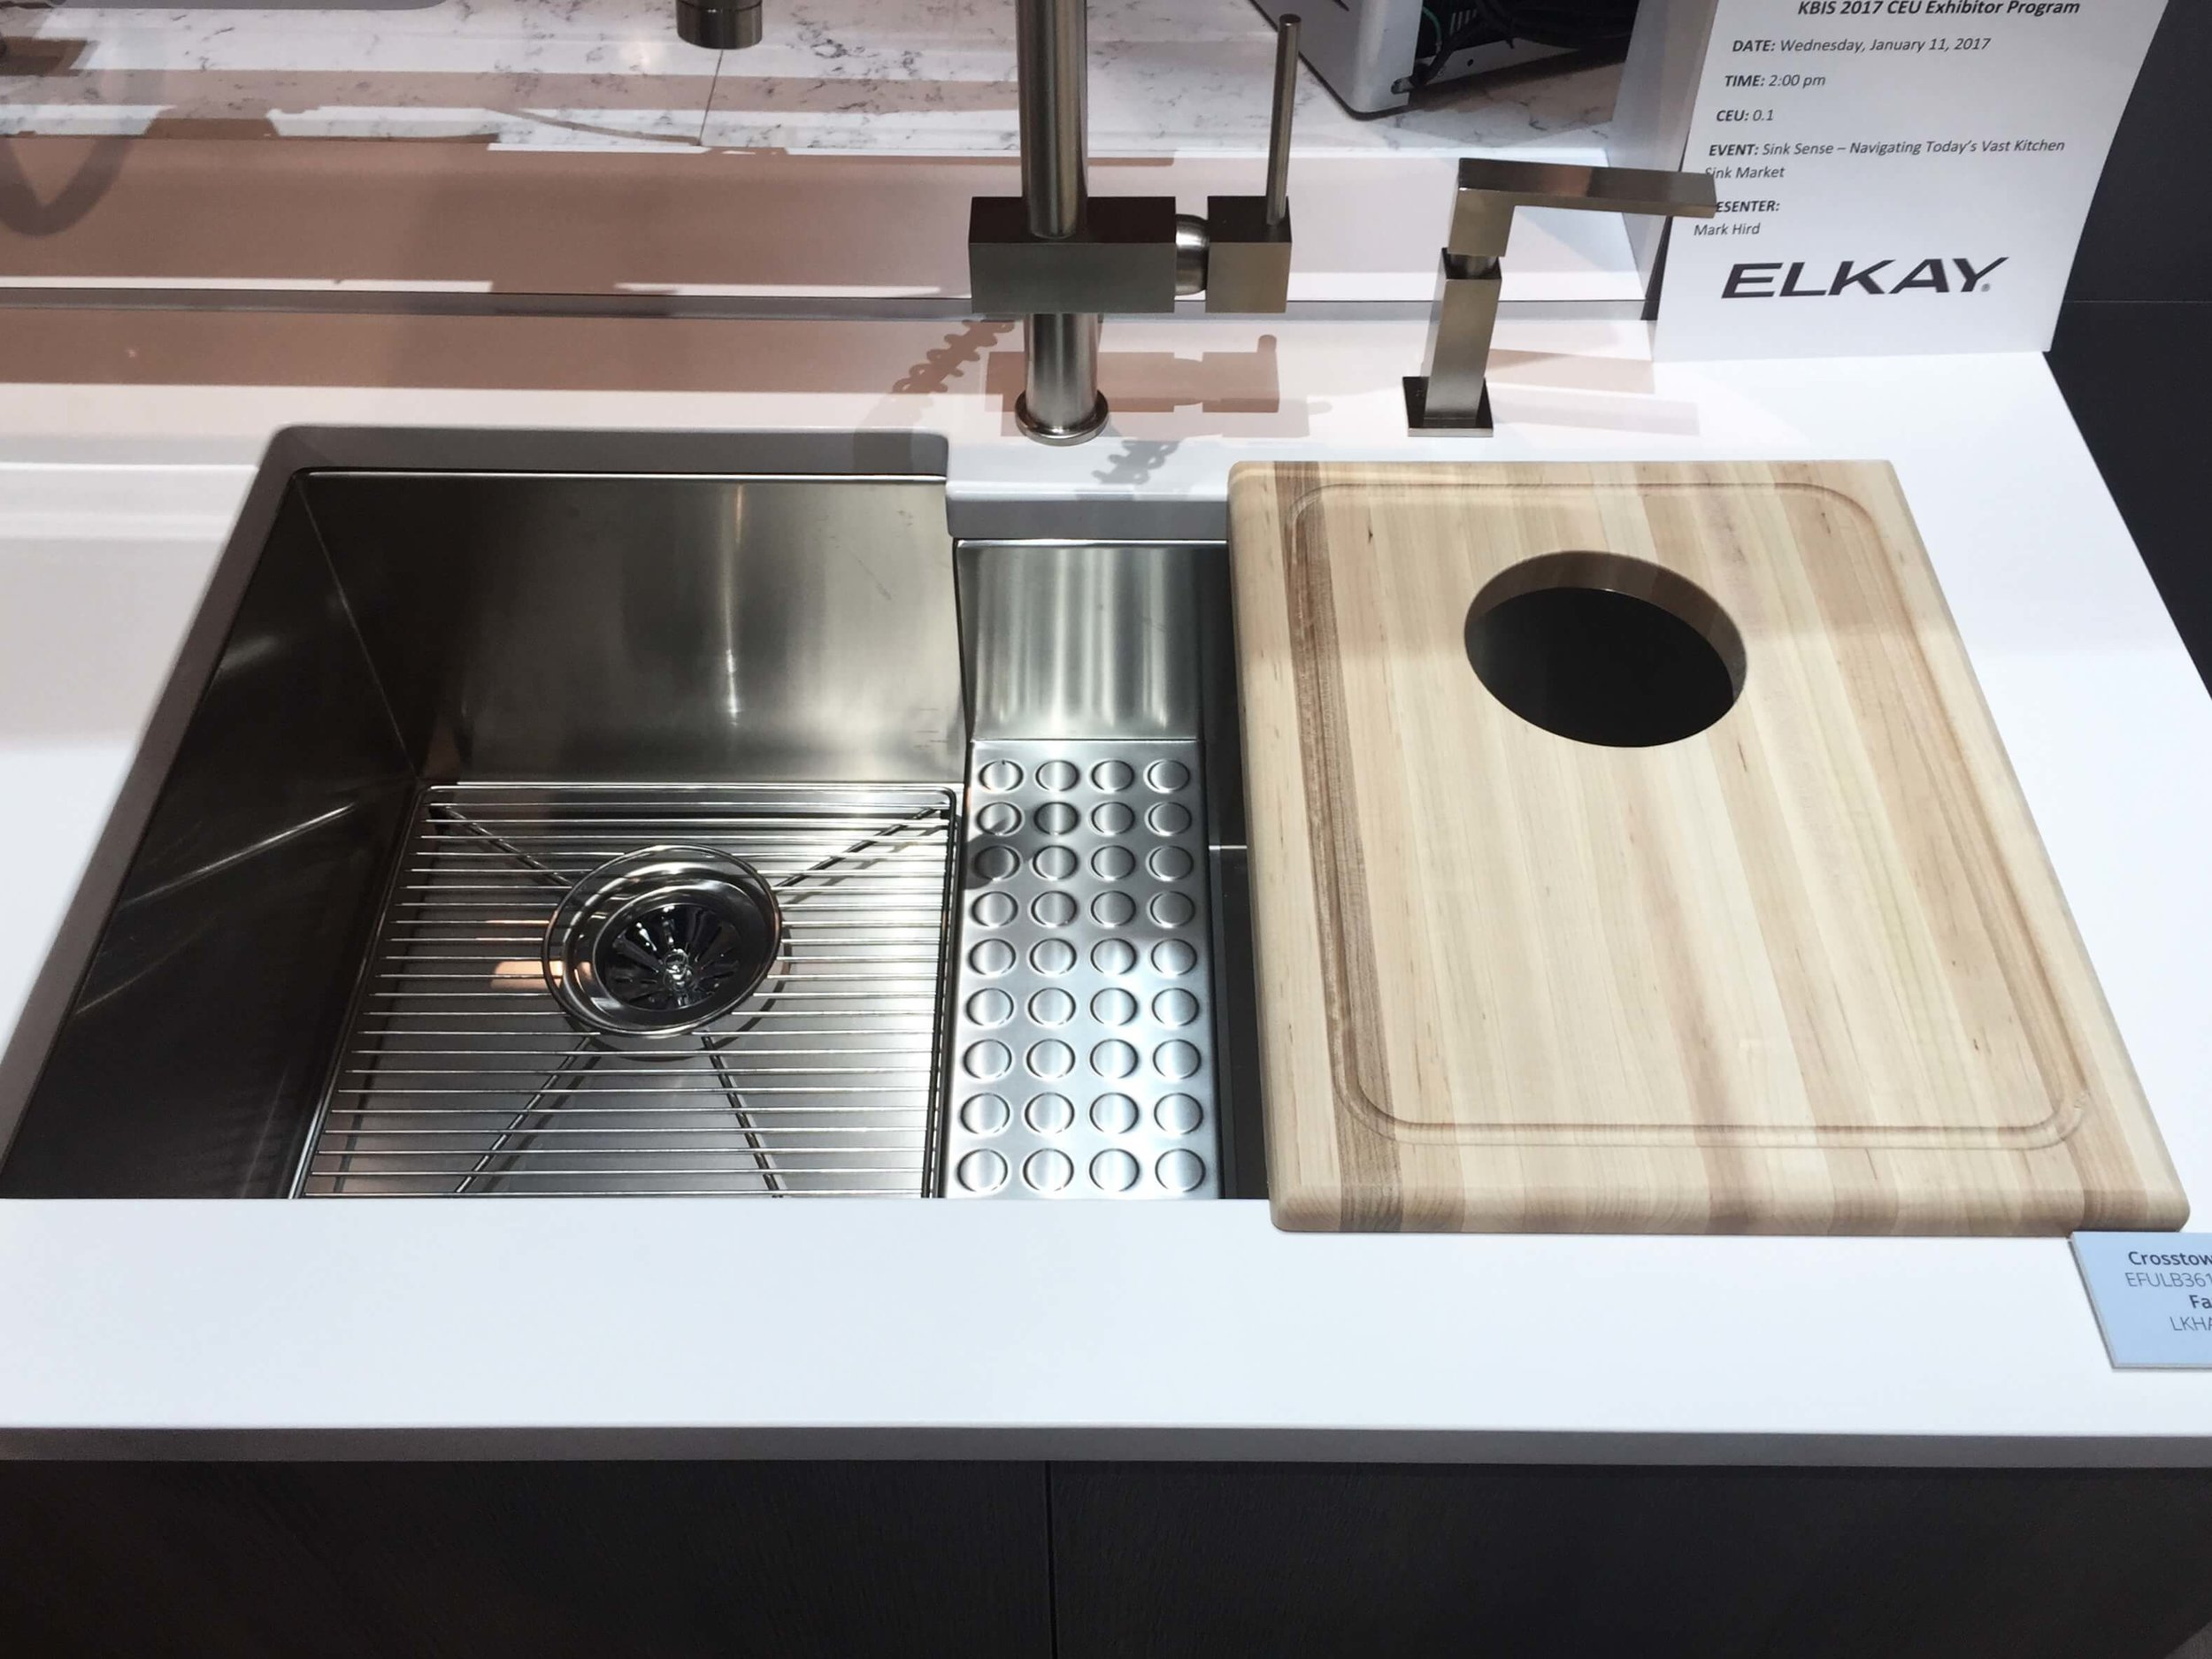 Elkay stainless steel sink with cutting board